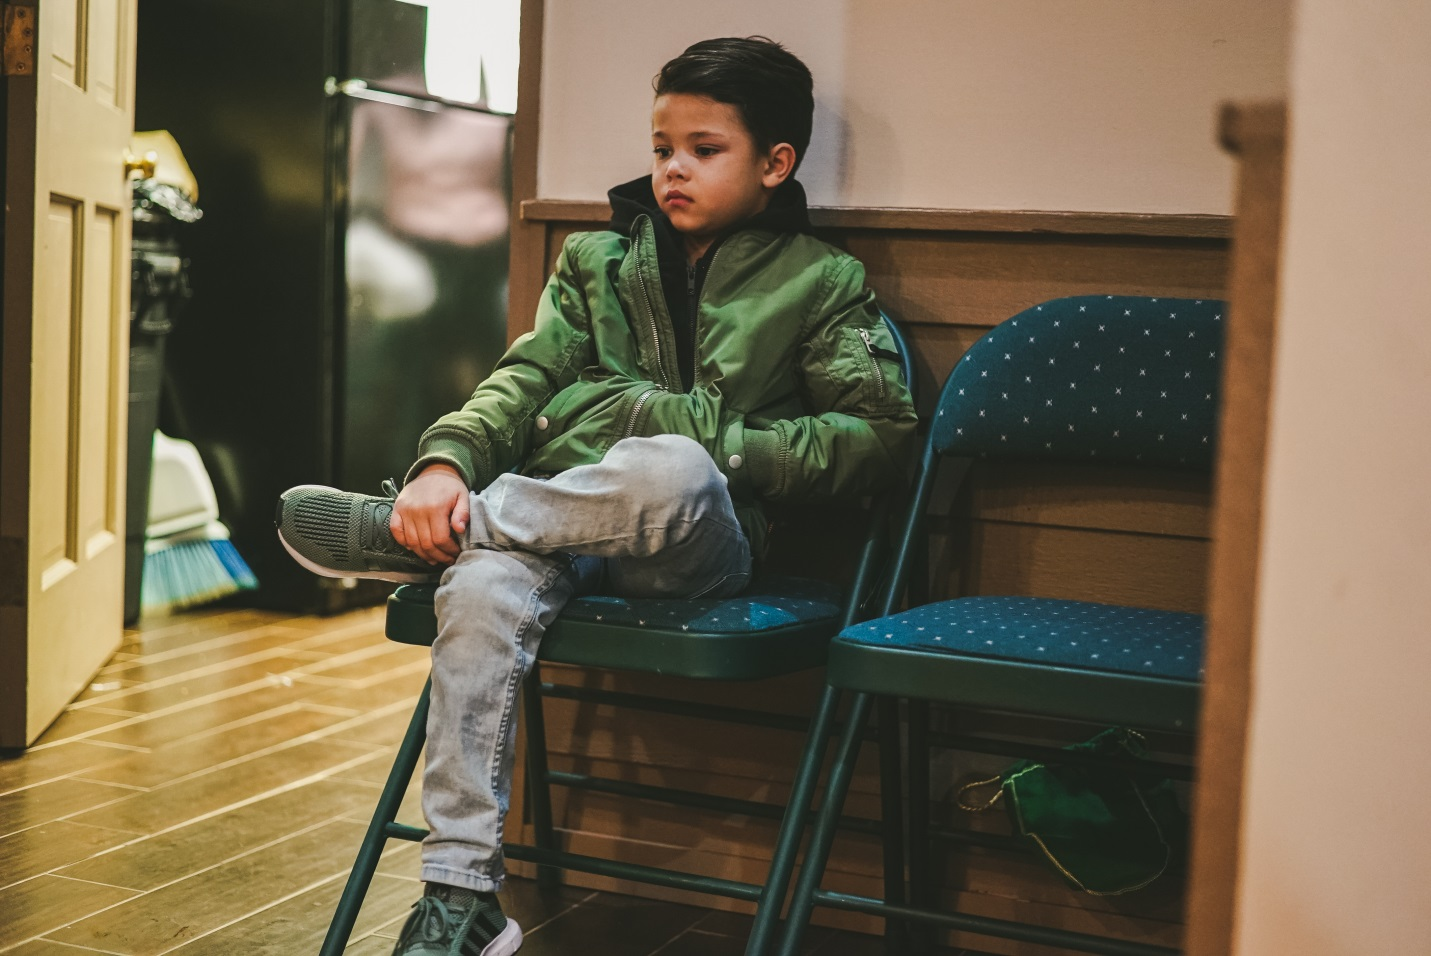 Boy in waiting room